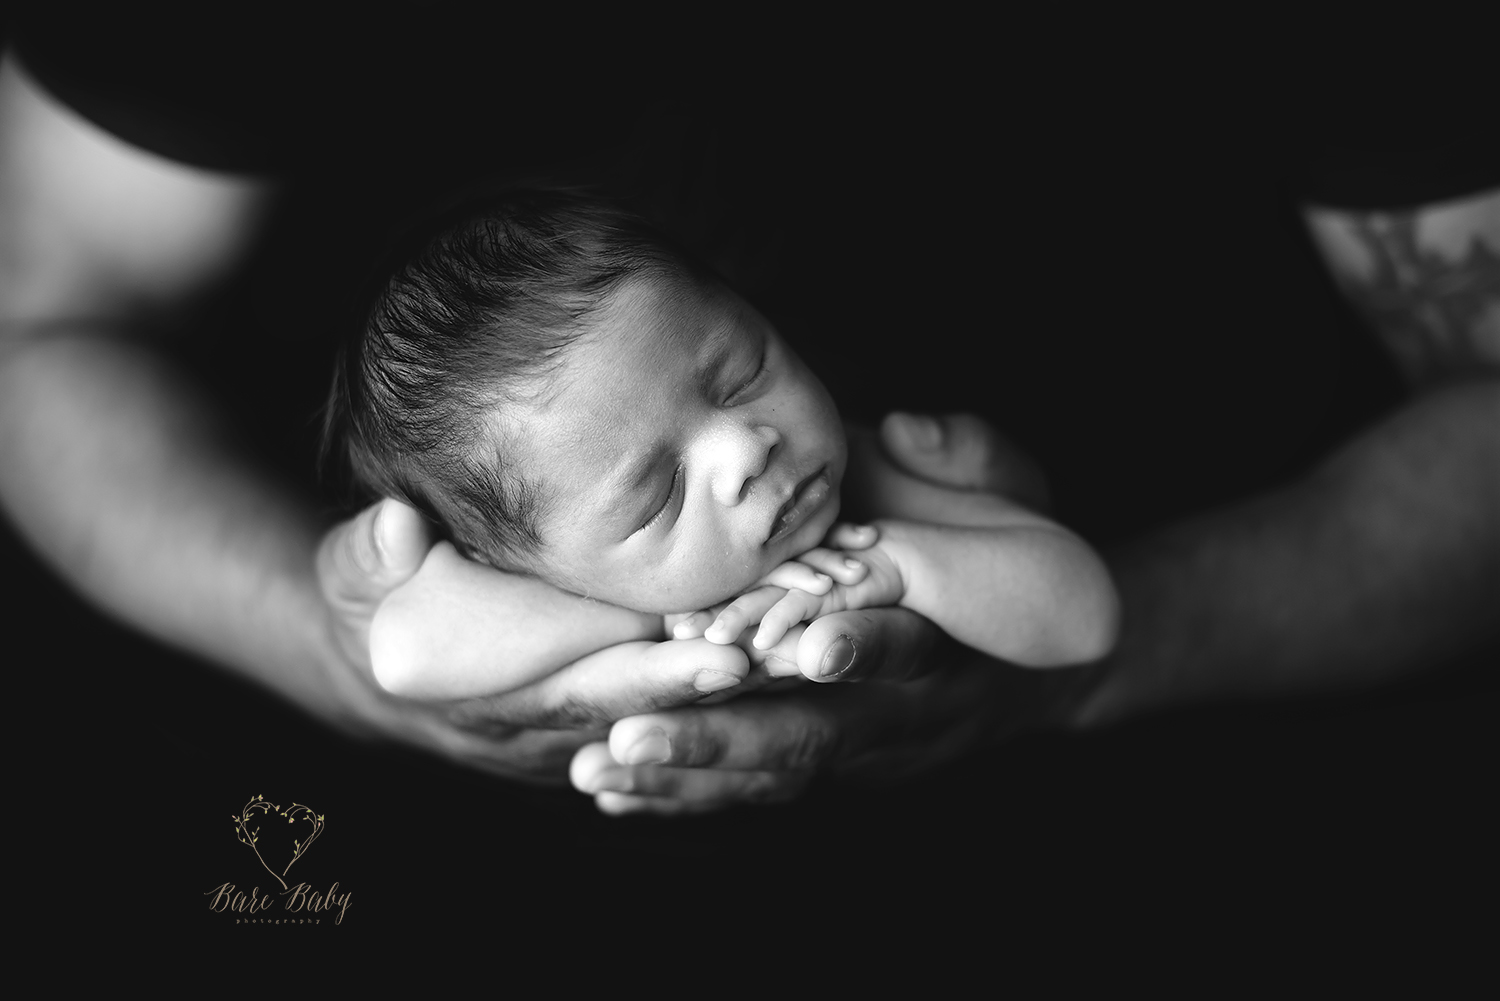 beautiful-newborn-photos-barebabyphotography.jpg